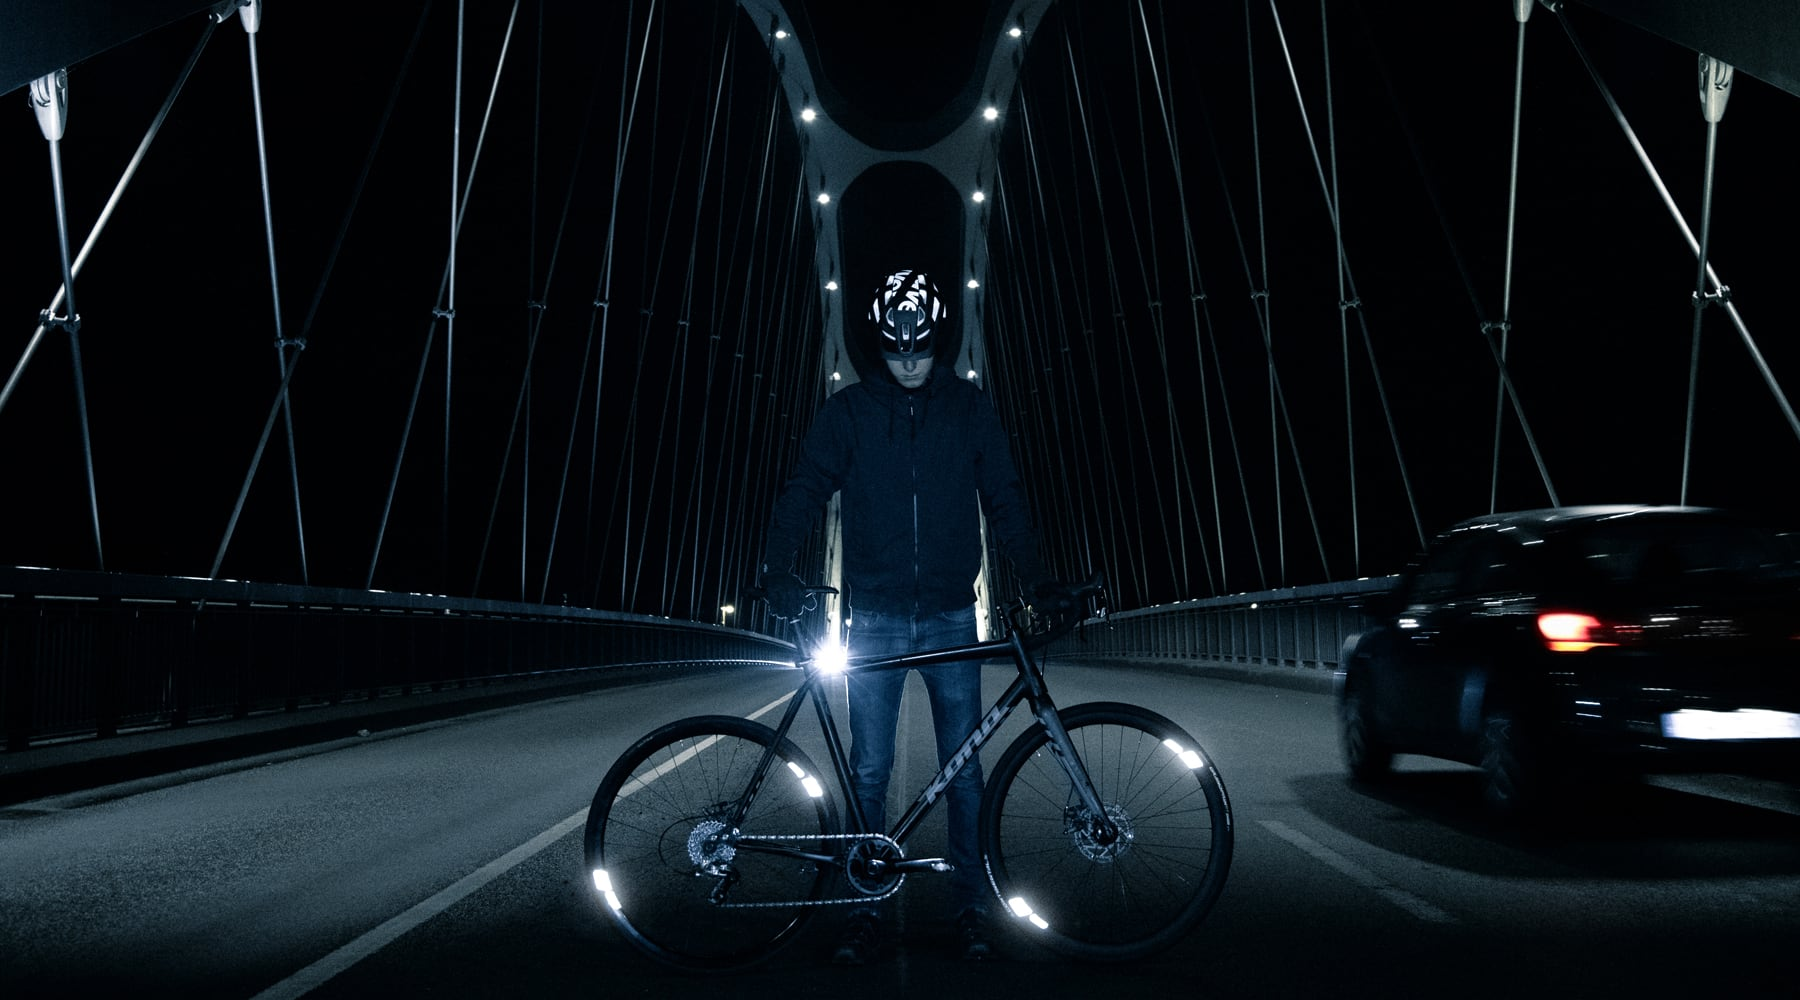 FLECTR 360 OMNI - The bicycle wheel reflector with 360 degree reflectivity – Edition 2020.